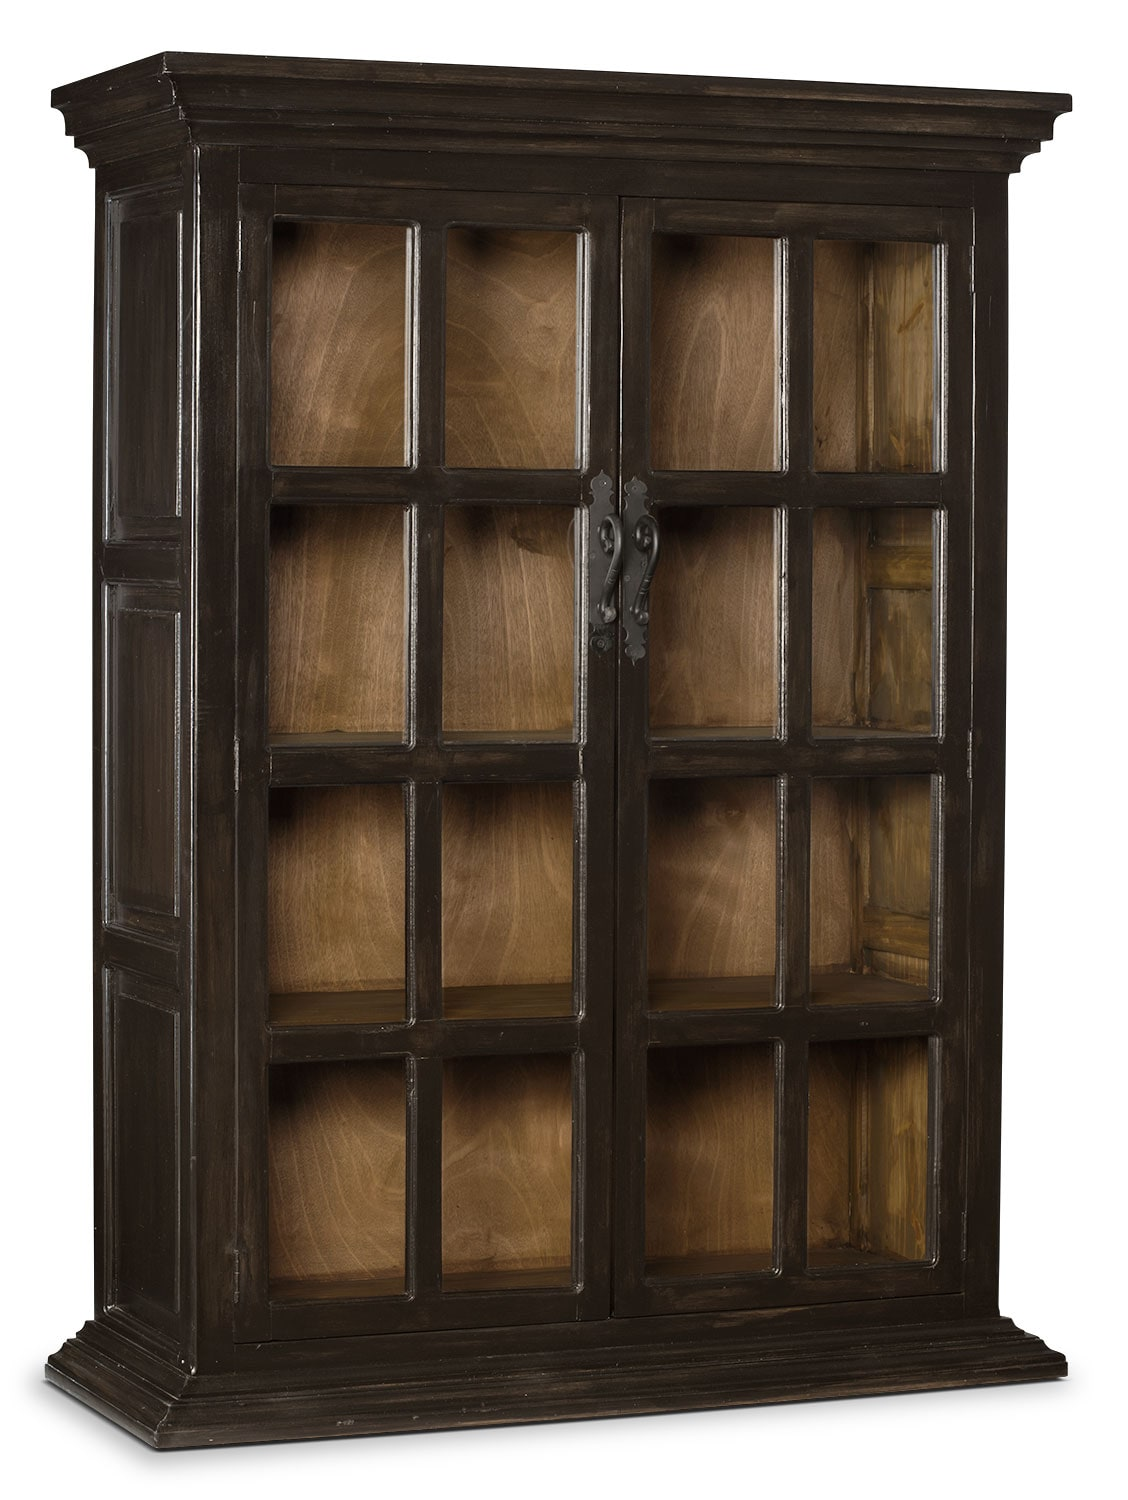 Accent and Occasional Furniture - Artesia Display Cabinet